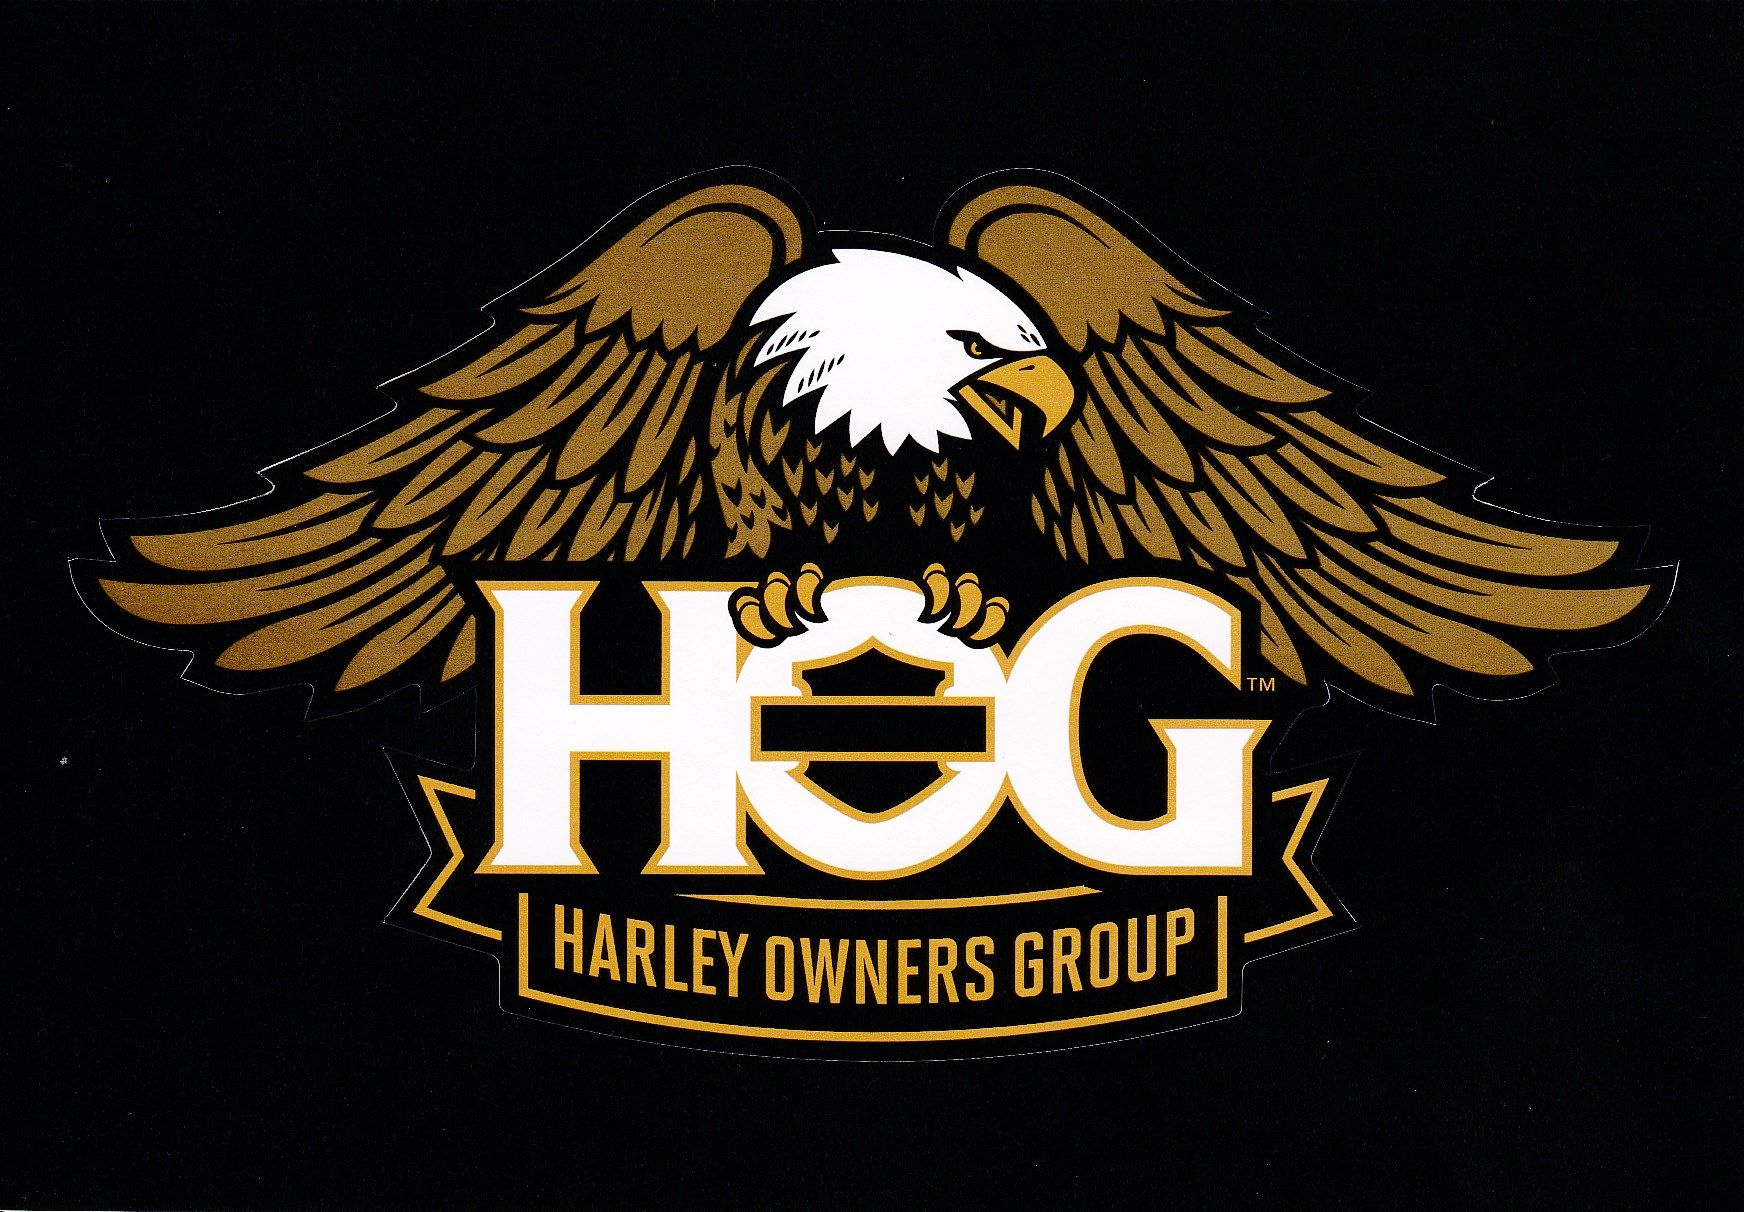 Harley Owners Group New Logo Harley davidson patches